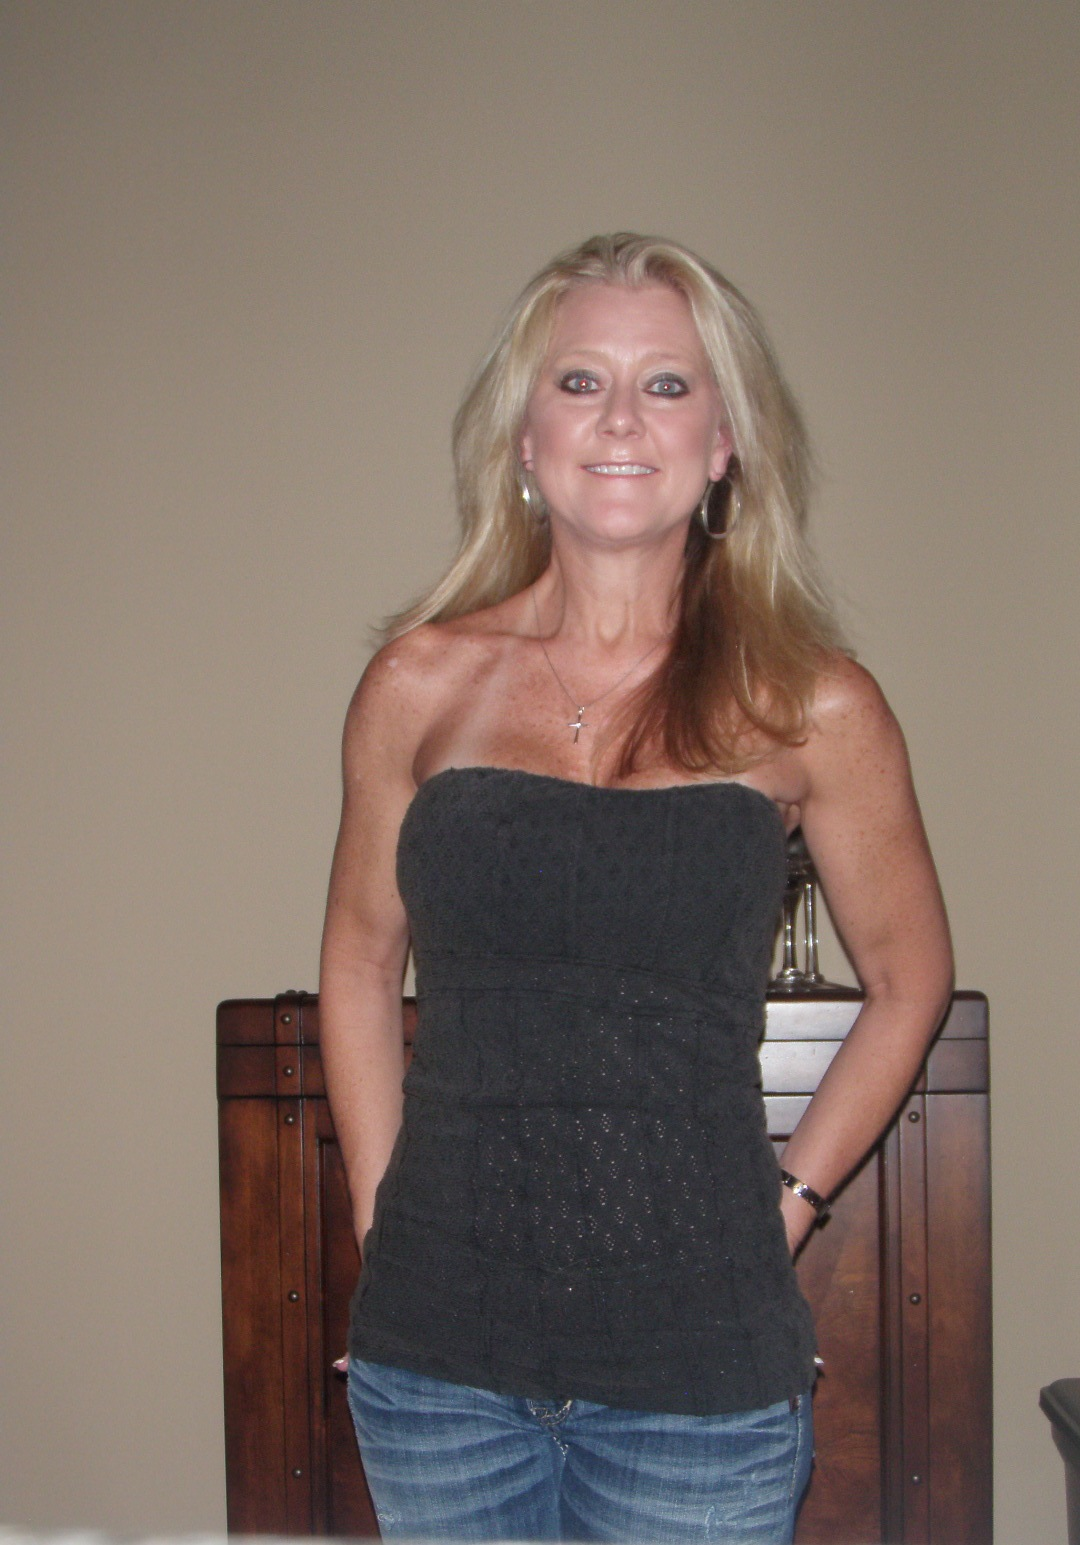 singles over 50 in hobe sound Meet single men in hobe sound fl online & chat in the forums dhu is a 100% free dating site to find single men in hobe sound.